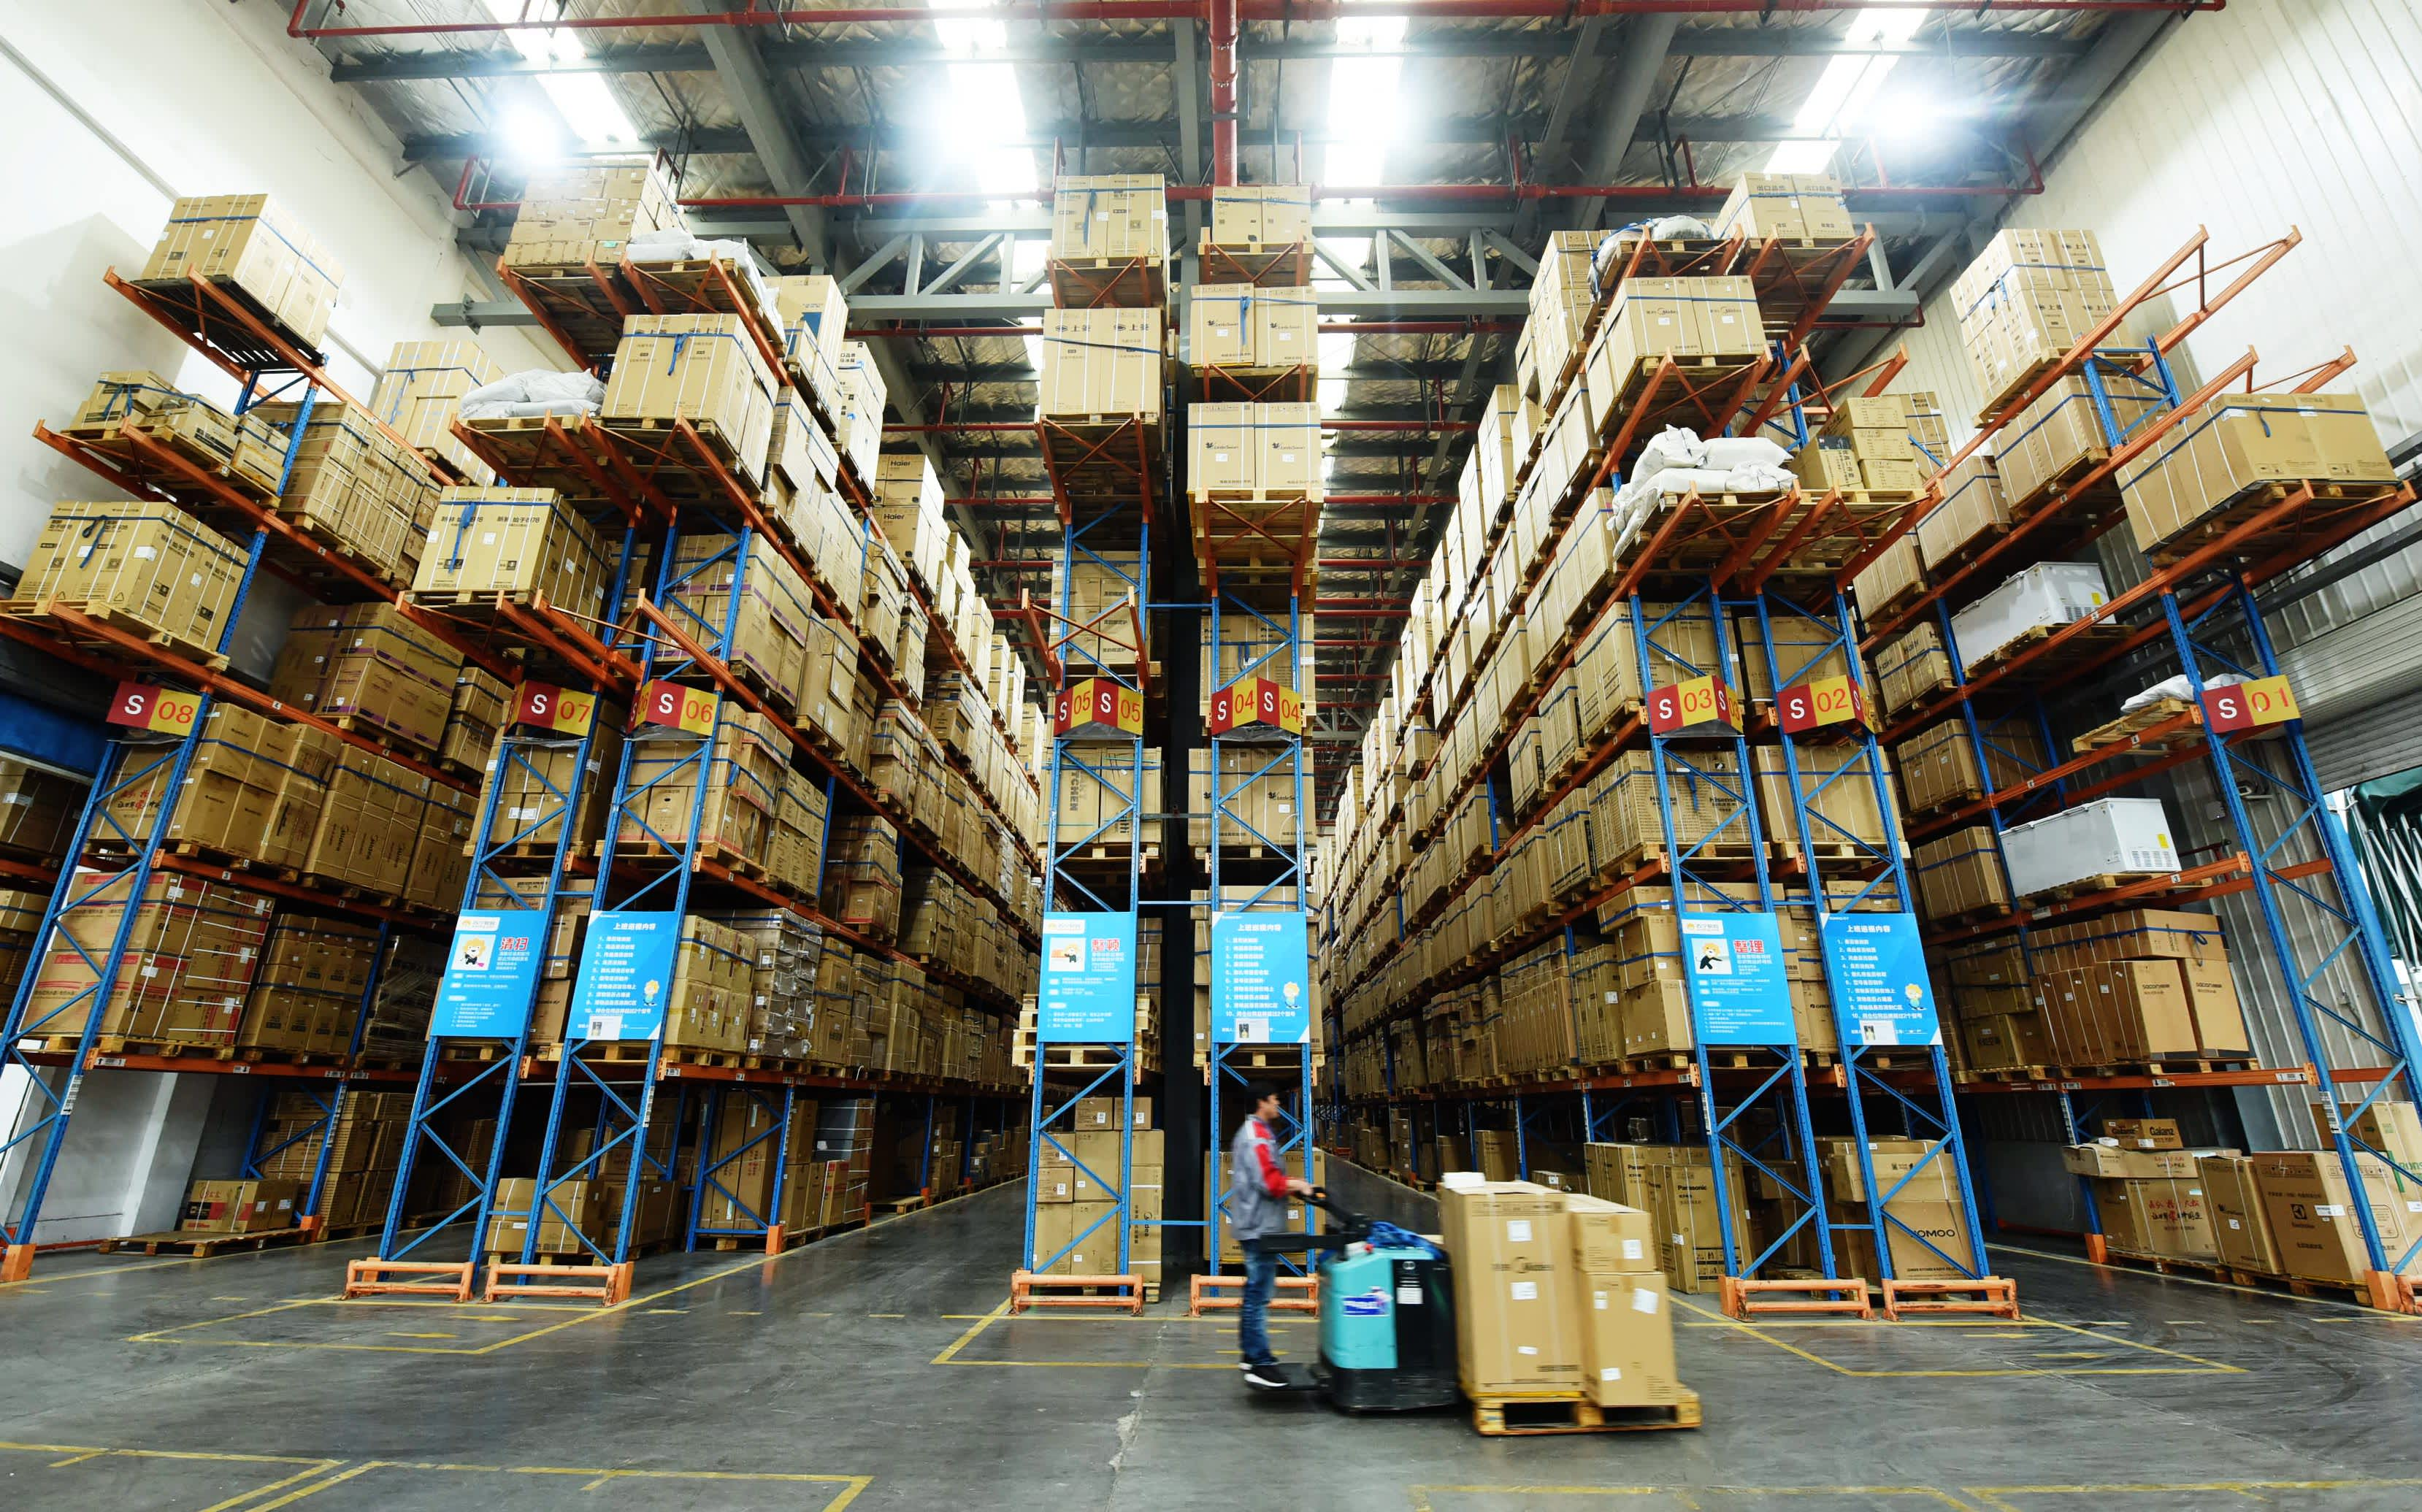 'Underdeveloped' warehousing in China could be an investing opportunity for property investors